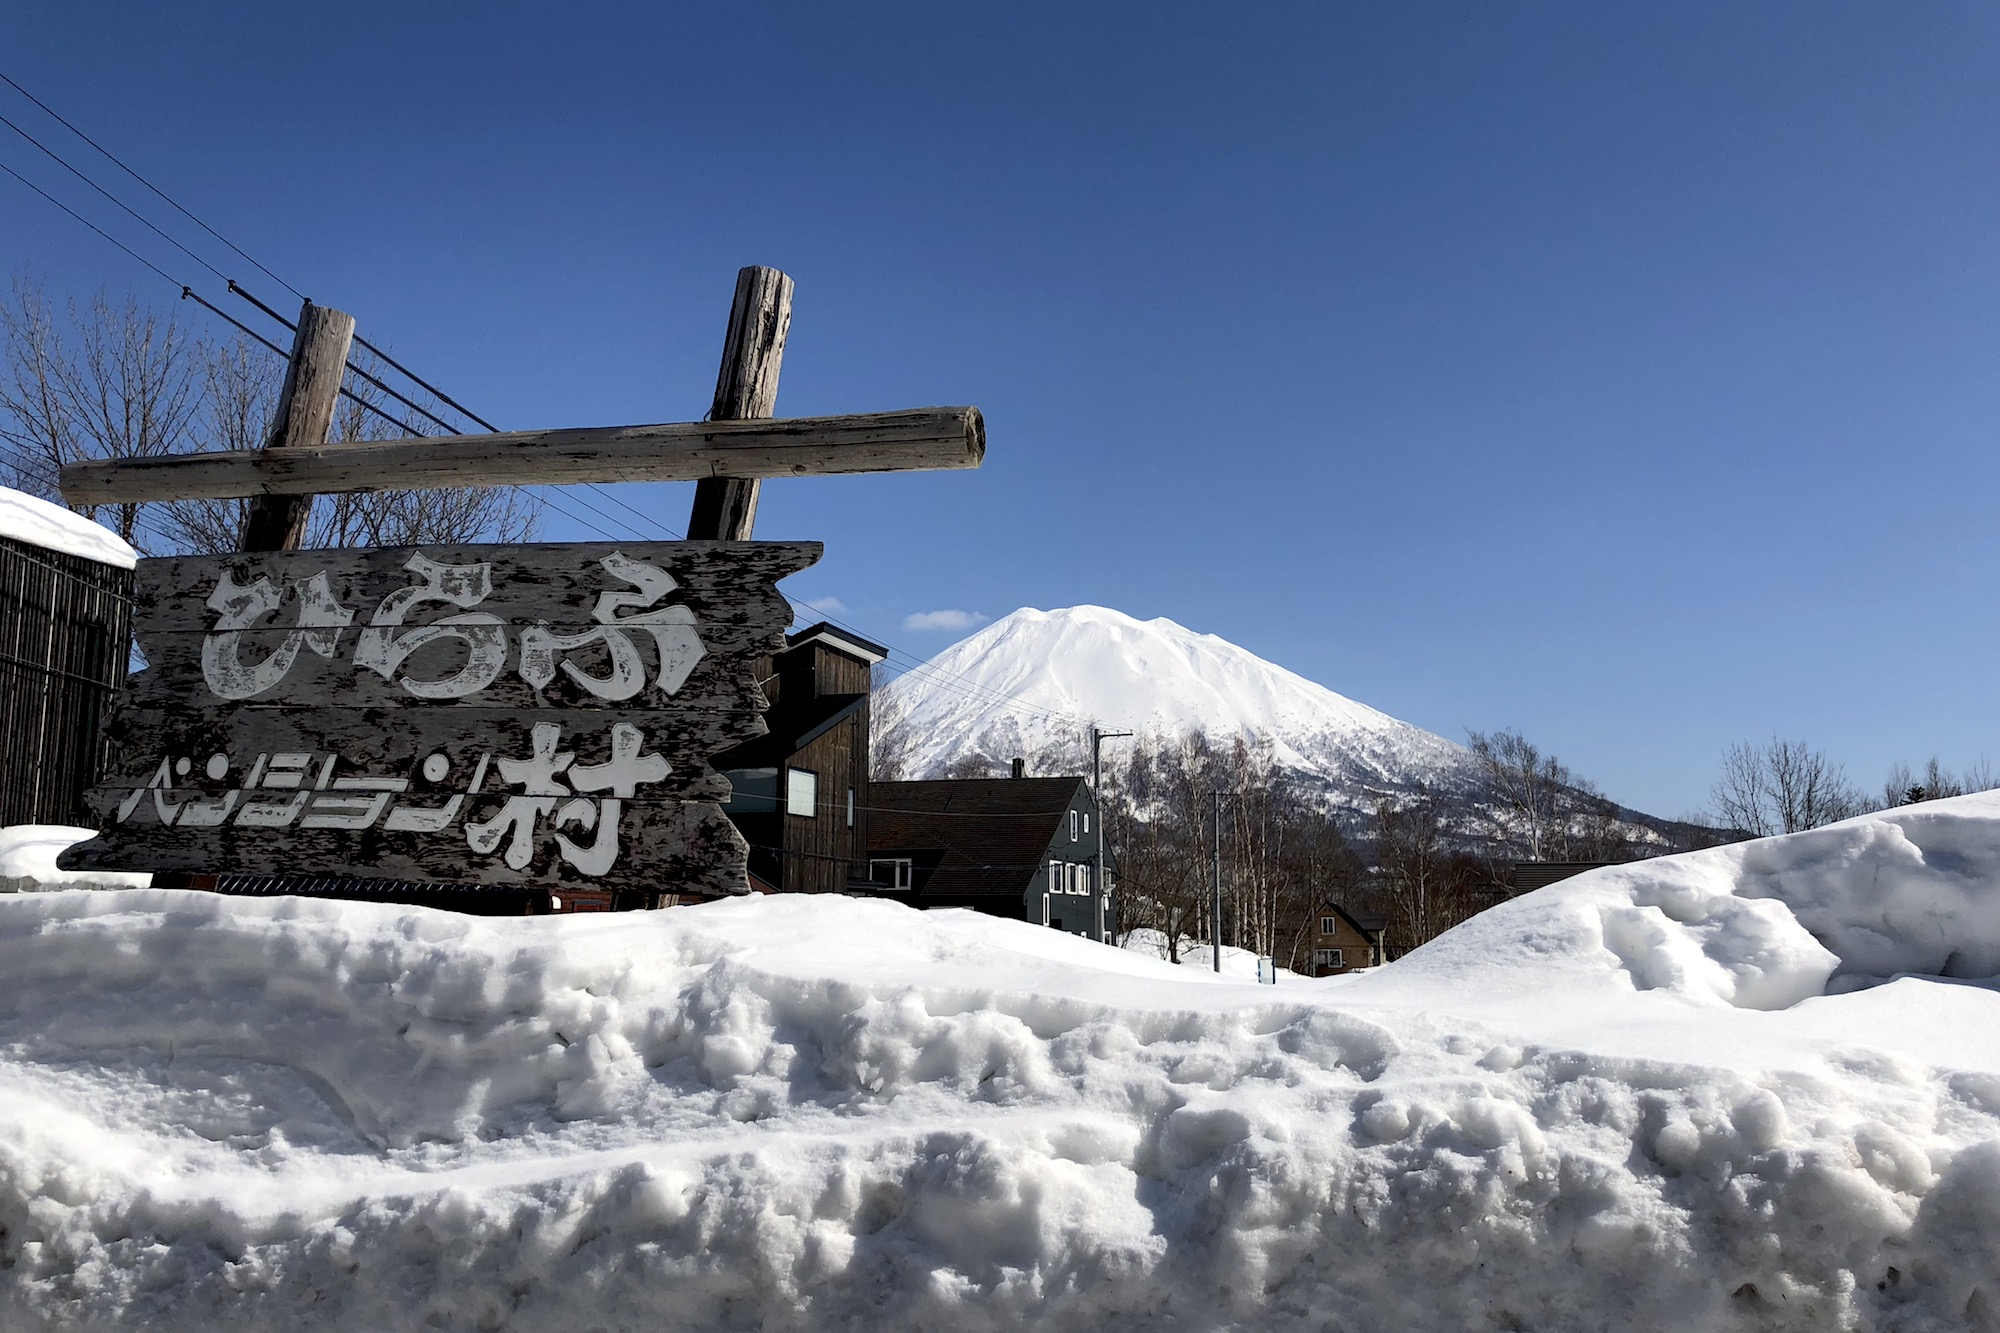 10 Niseko Instagrams to Follow for a Serious Powder Fix